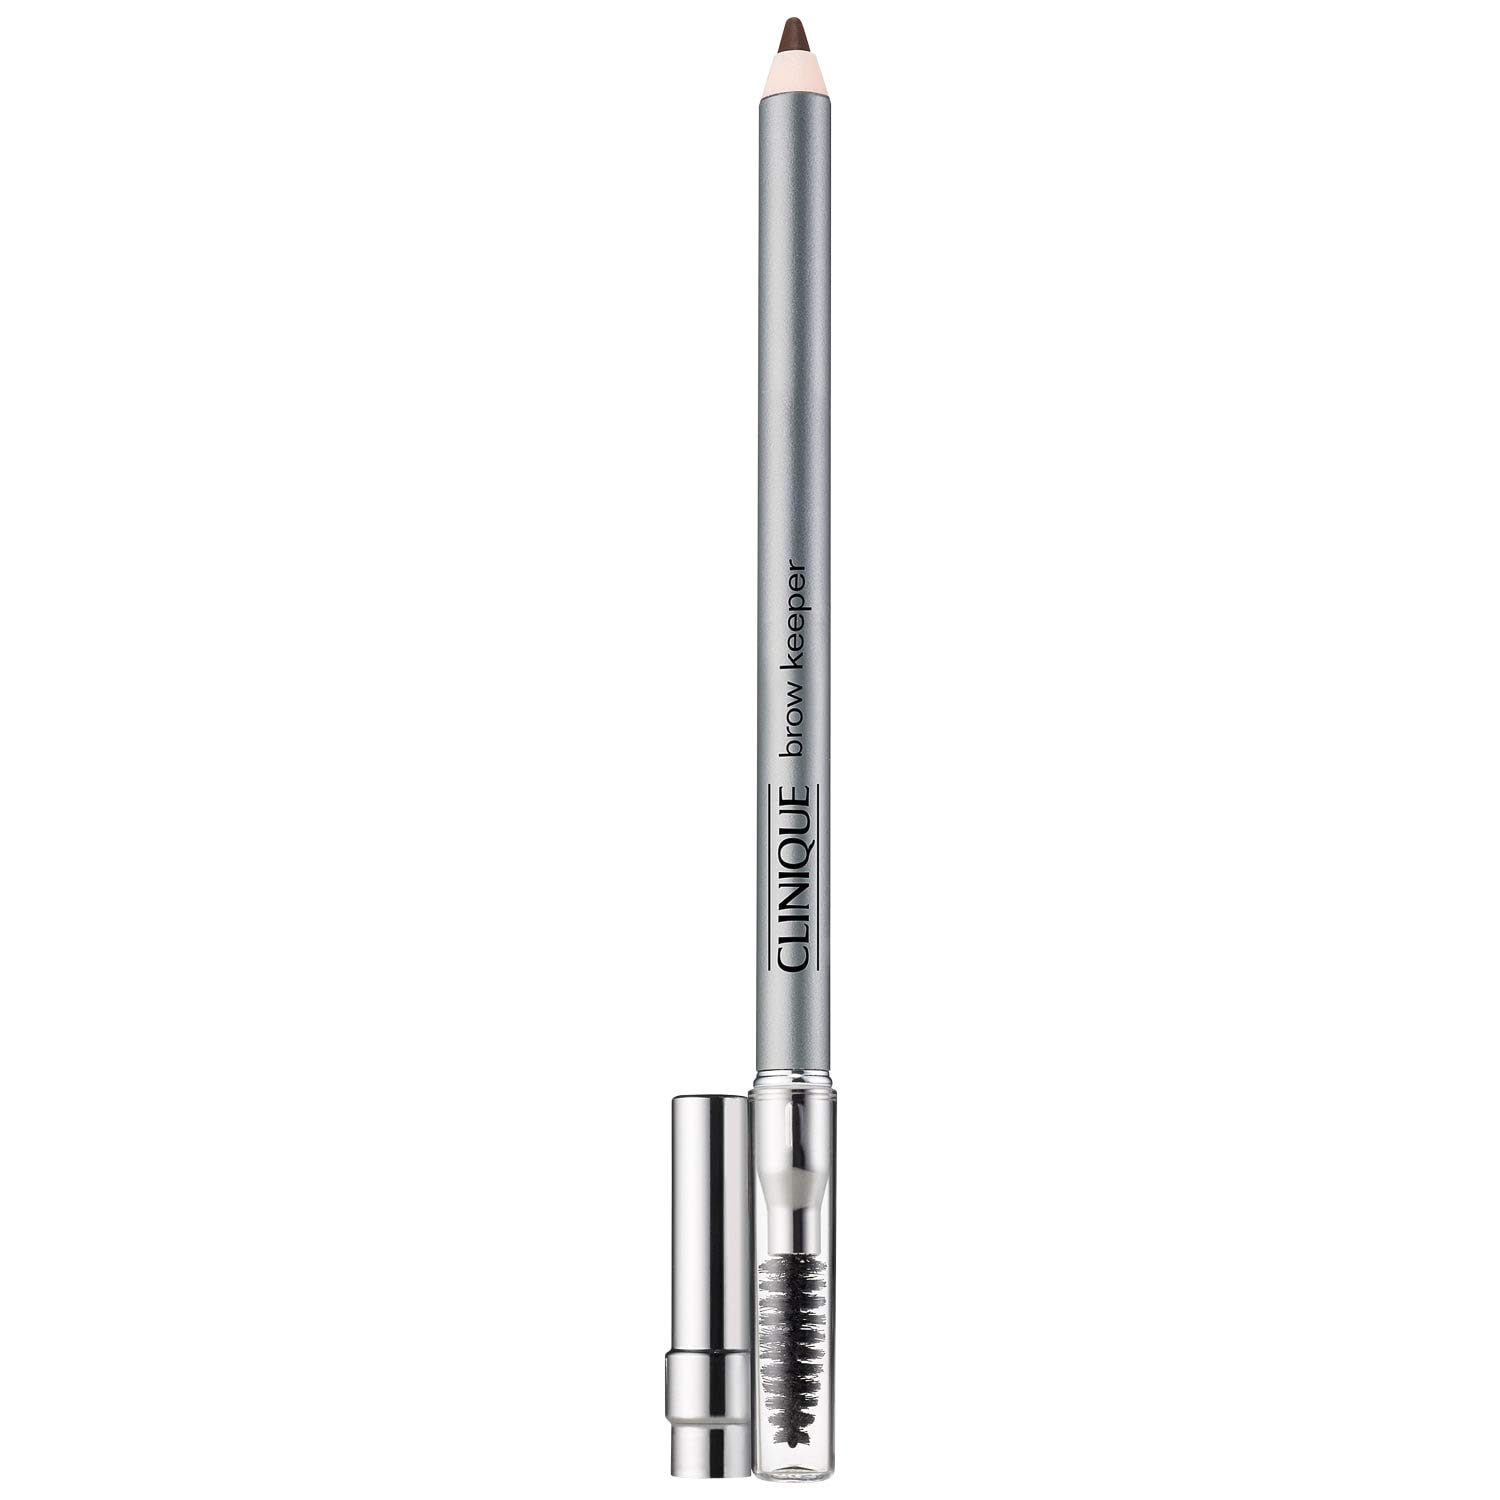 Clinique Brow Keeper Brow Pencil with Brush, .04oz/1.2g, 01 Warm Brown by Voronajj (Image #1)